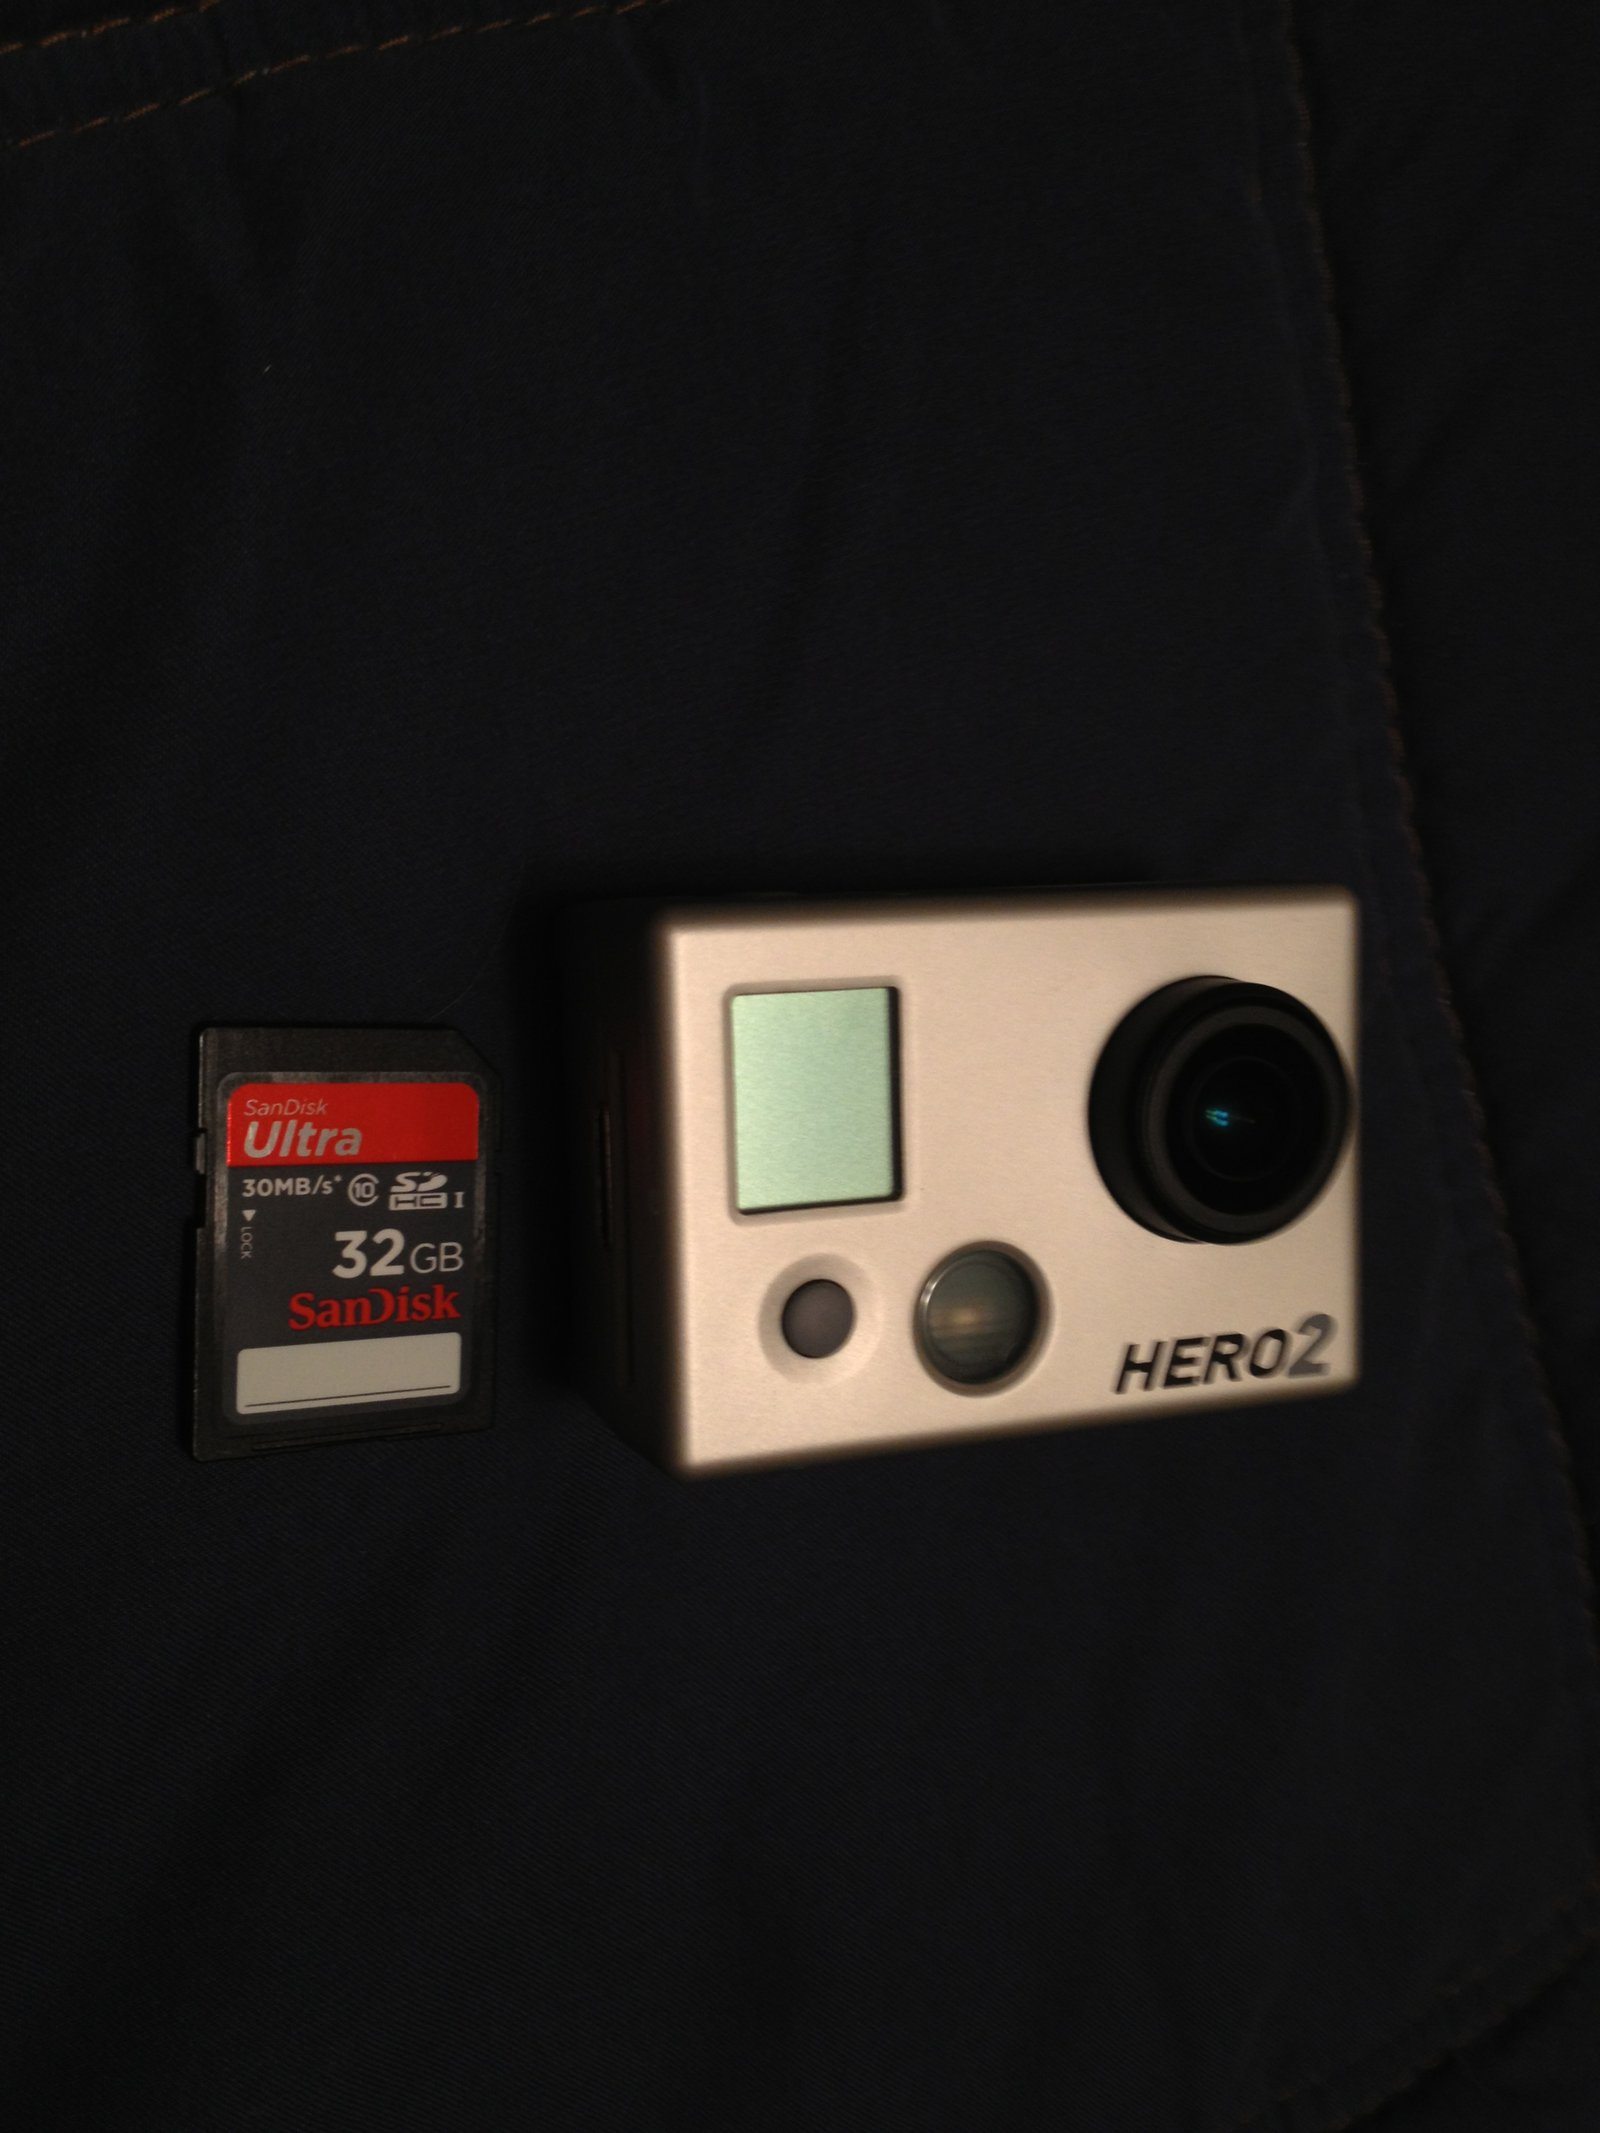 Gopro and SD card